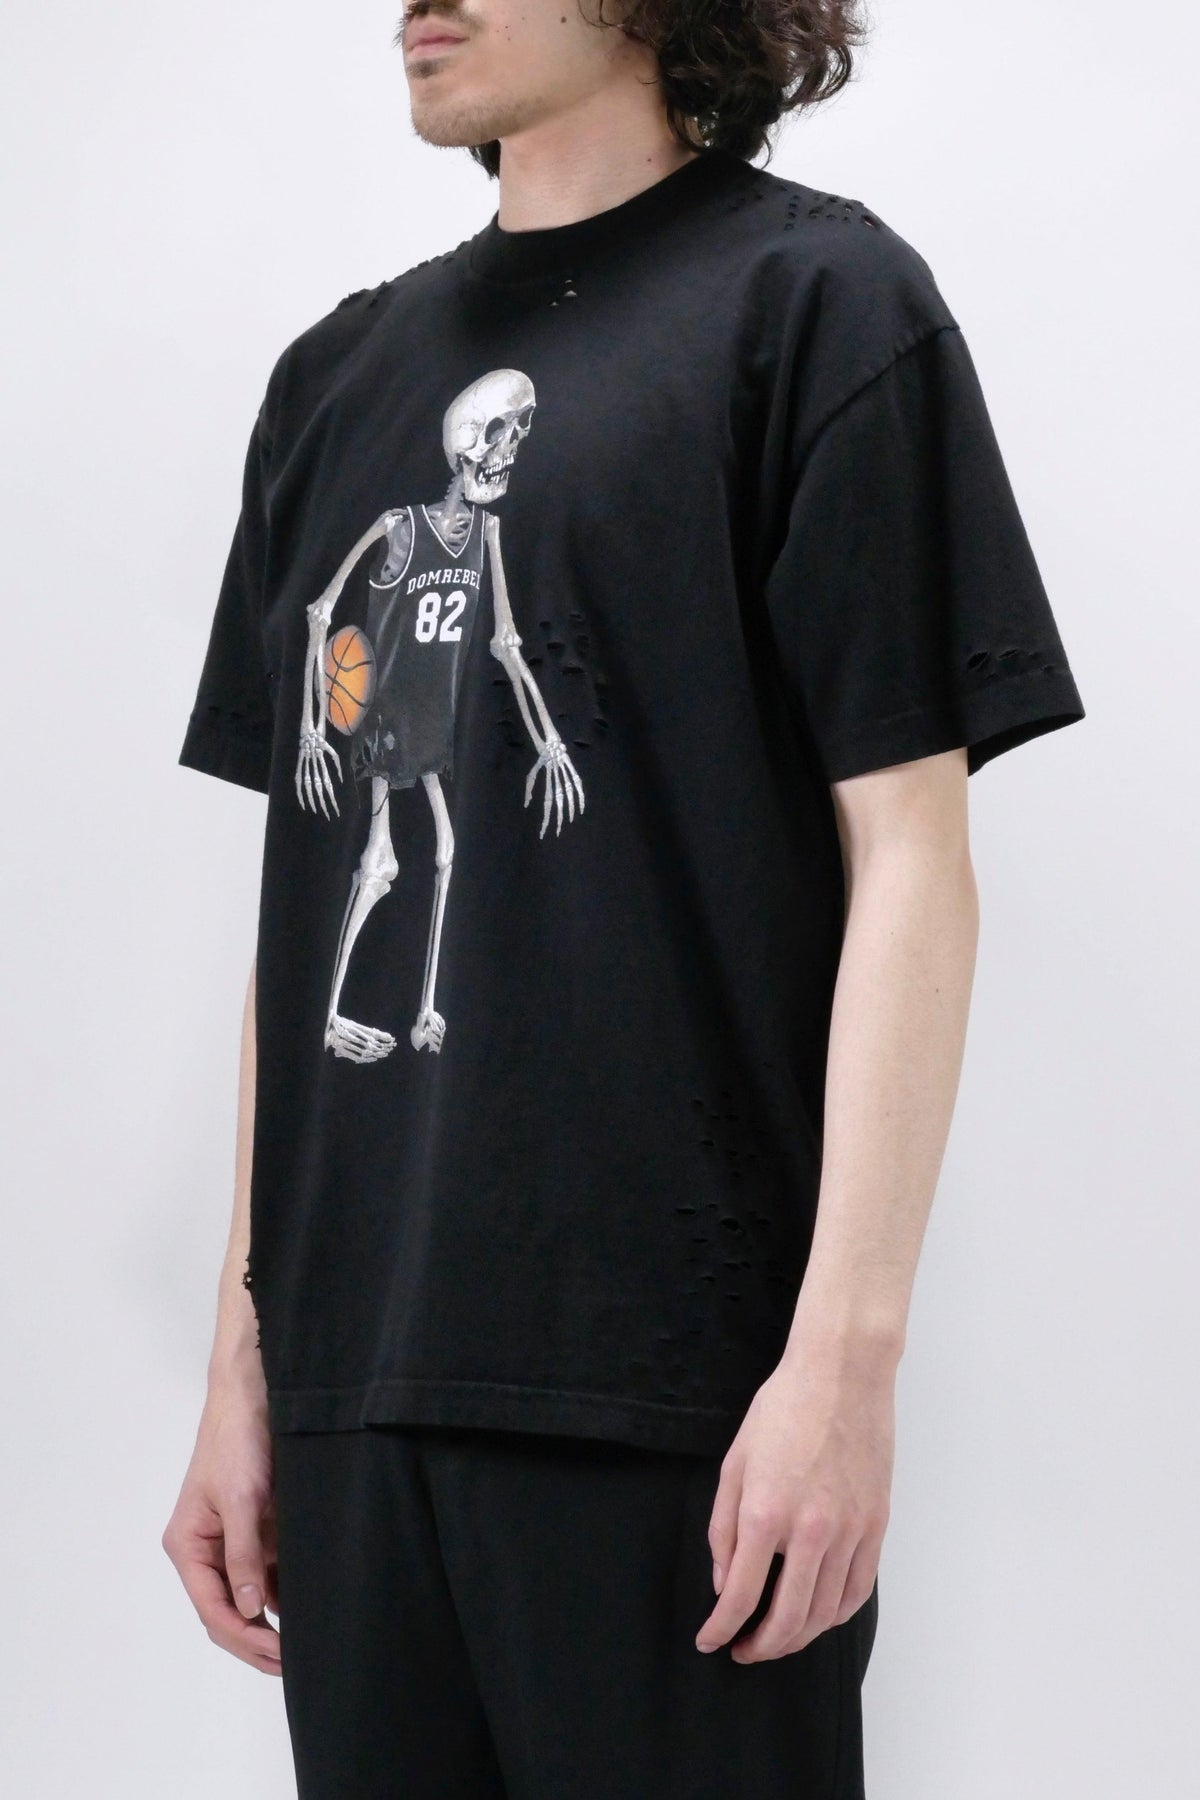 DOMREBEL Skeleball Holes Box Tee - Black